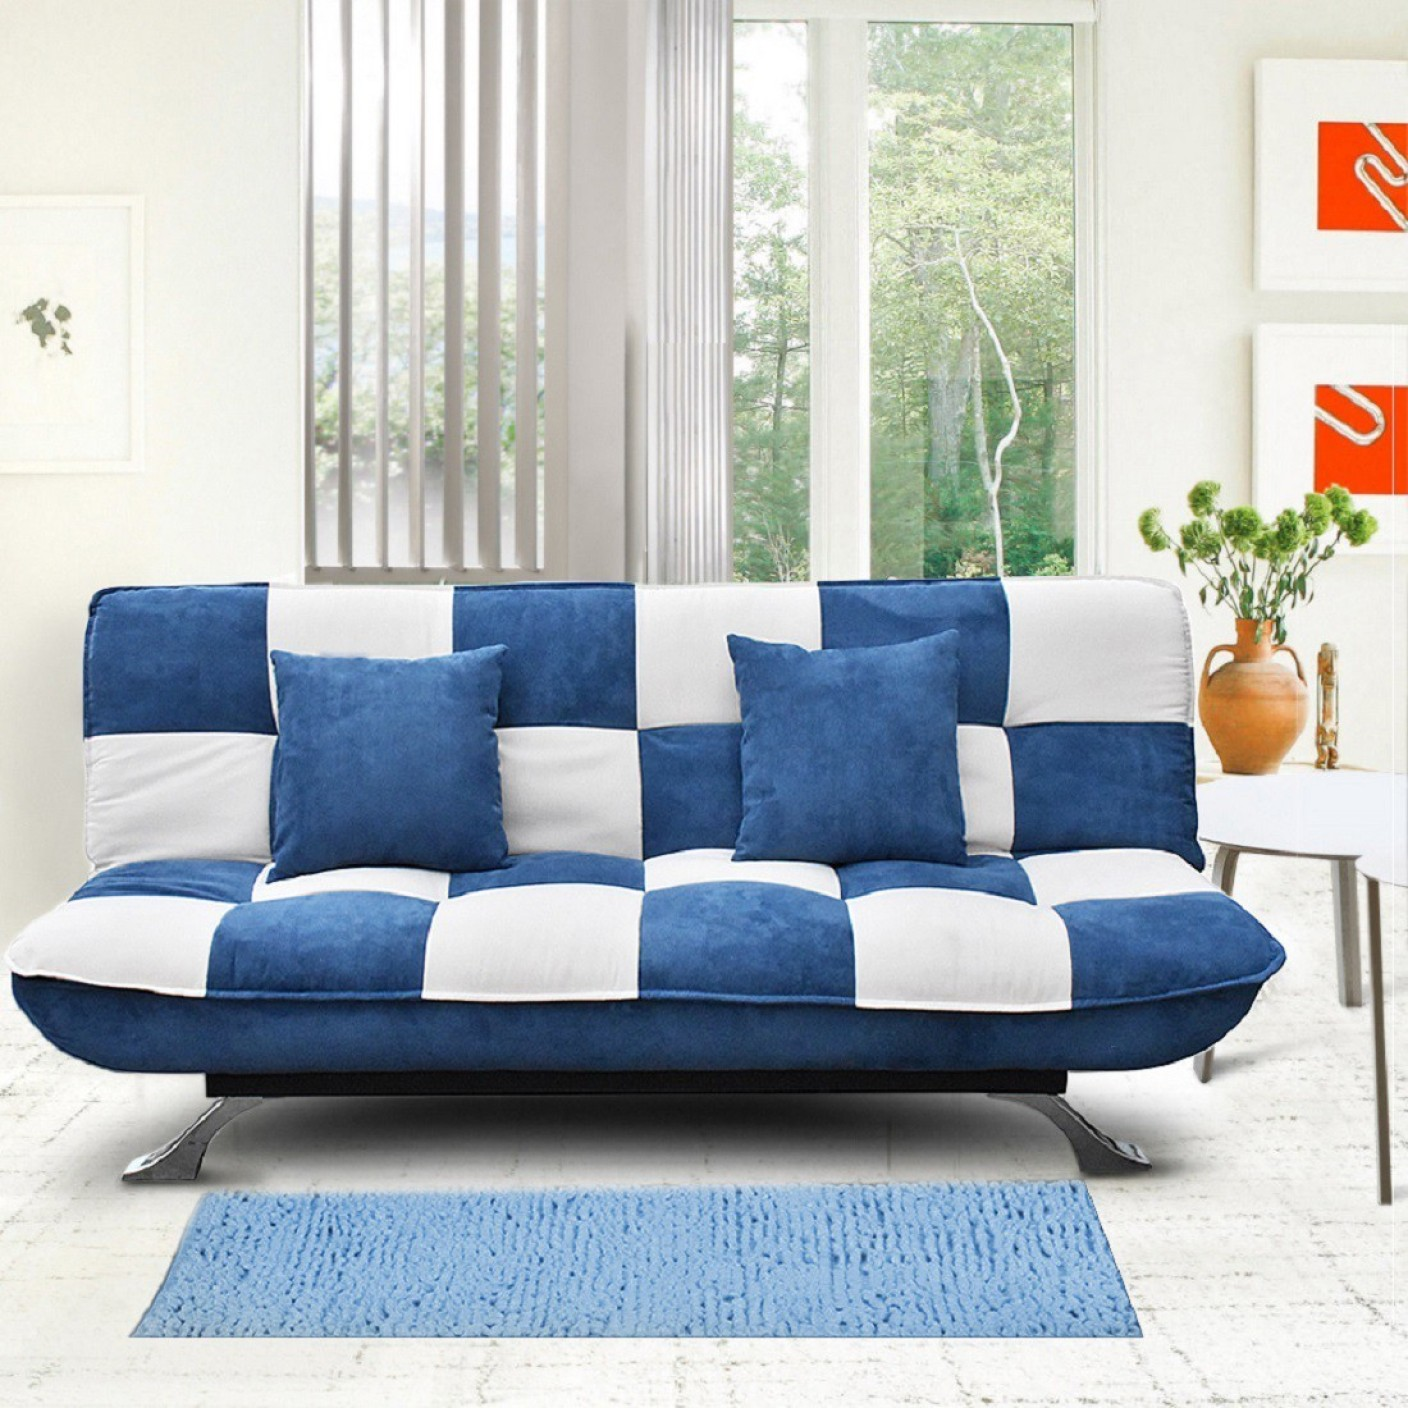 Auspicious Home Zen Double Solid Wood Sofa Bed Price in India